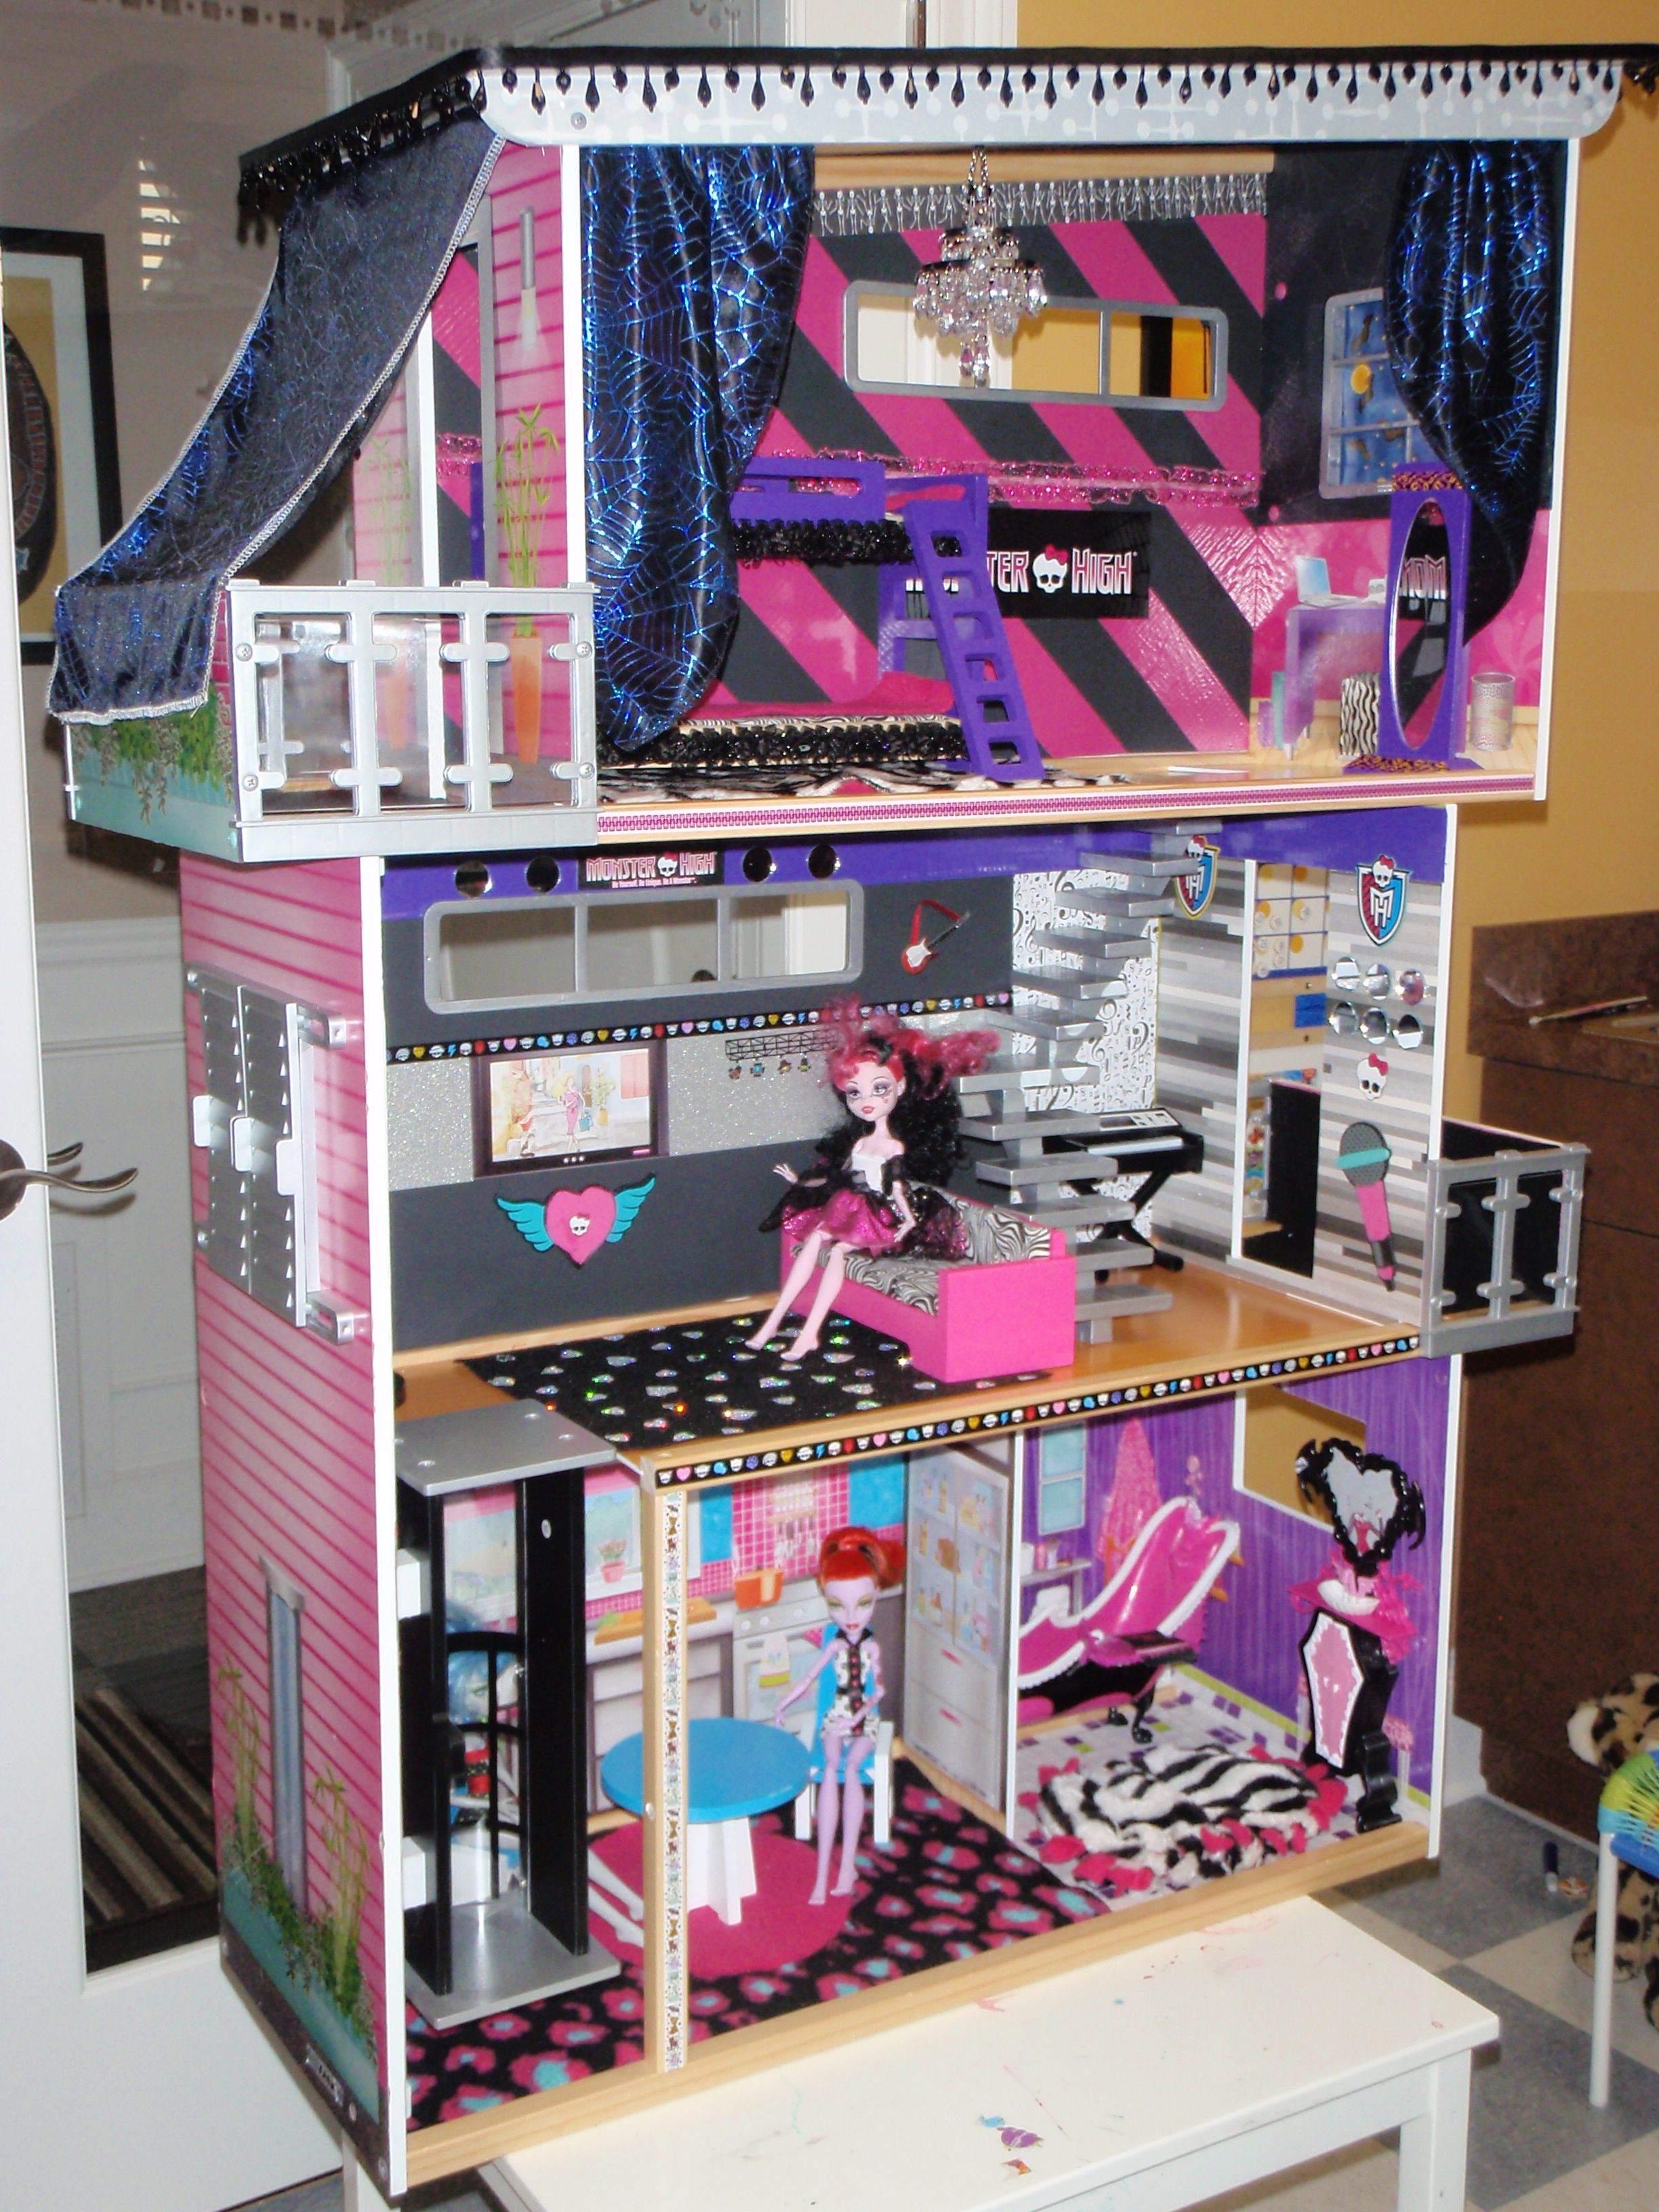 Check out the New Monster High doll house Emery and I worked on